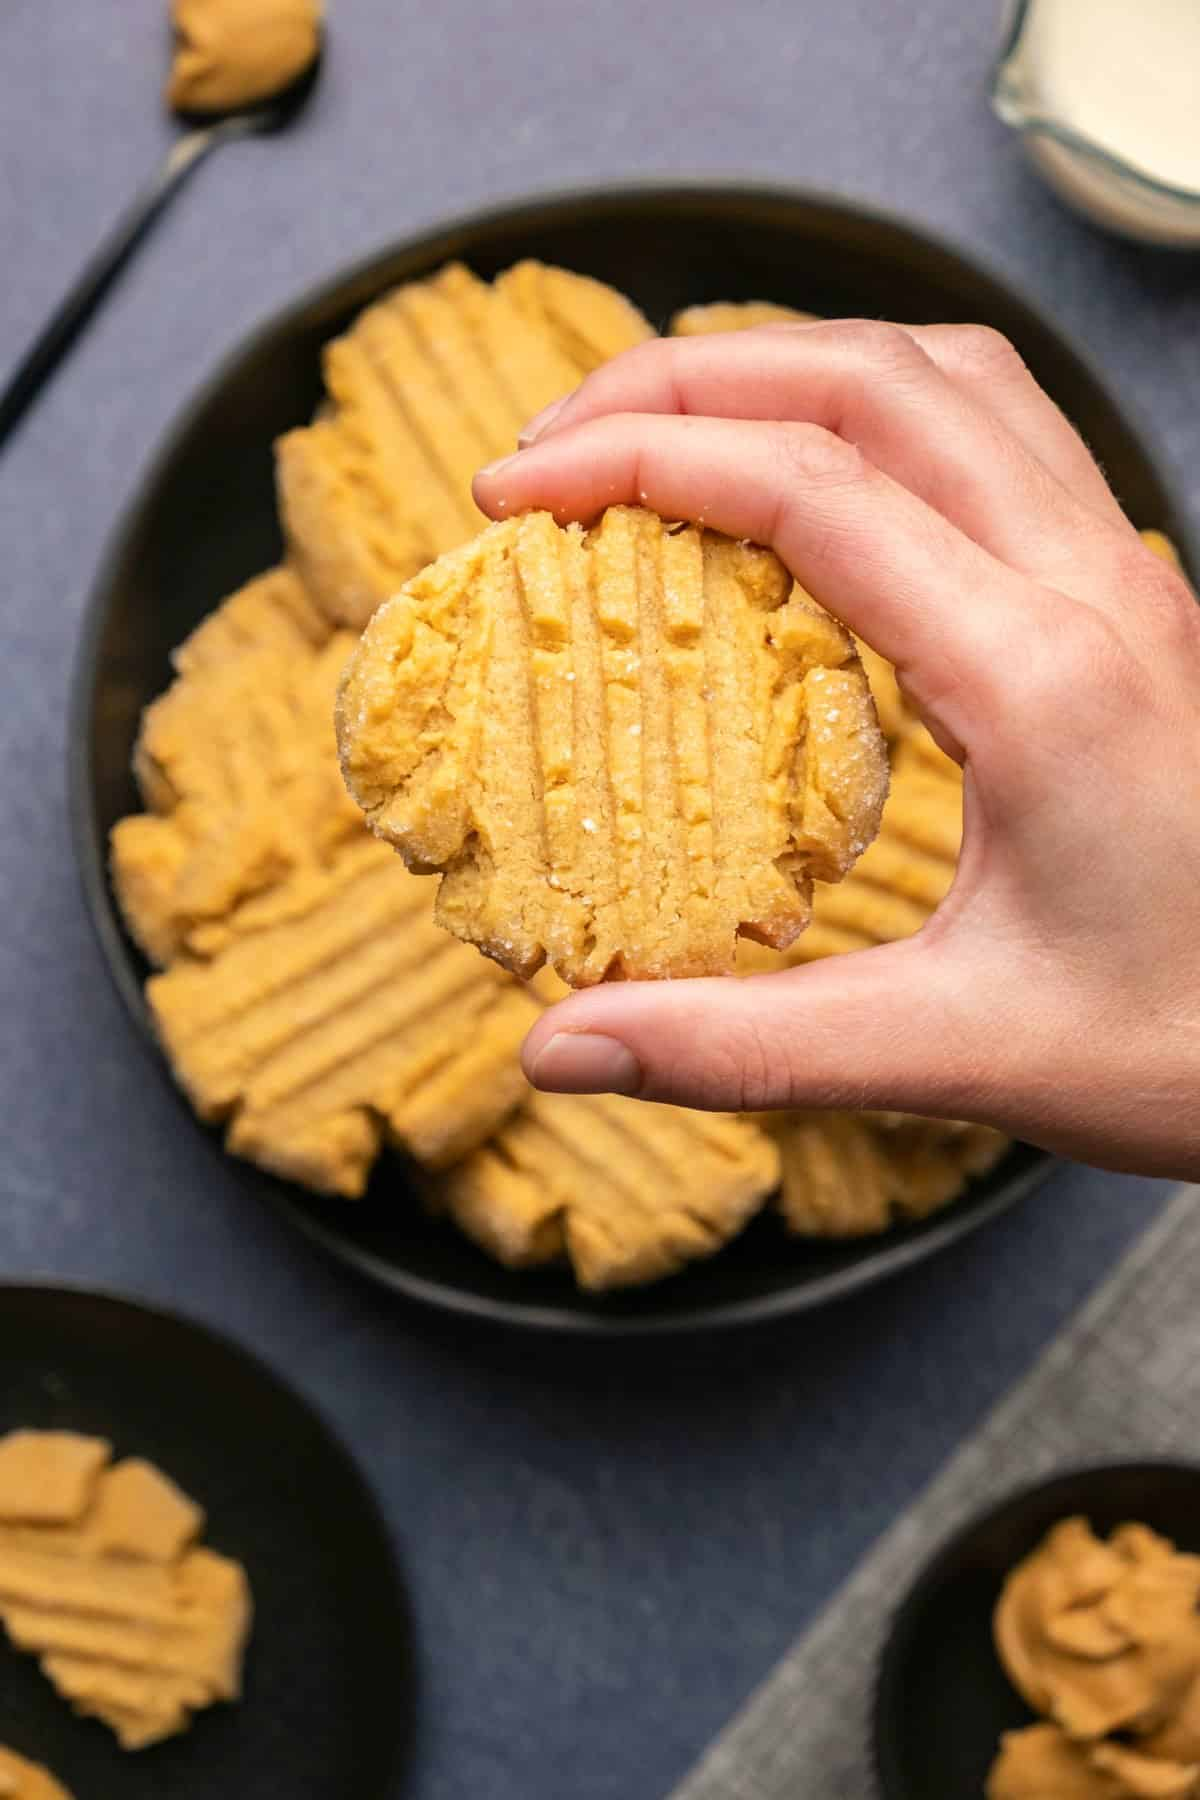 Holding a peanut butter cookie up above a bowl of cookies.